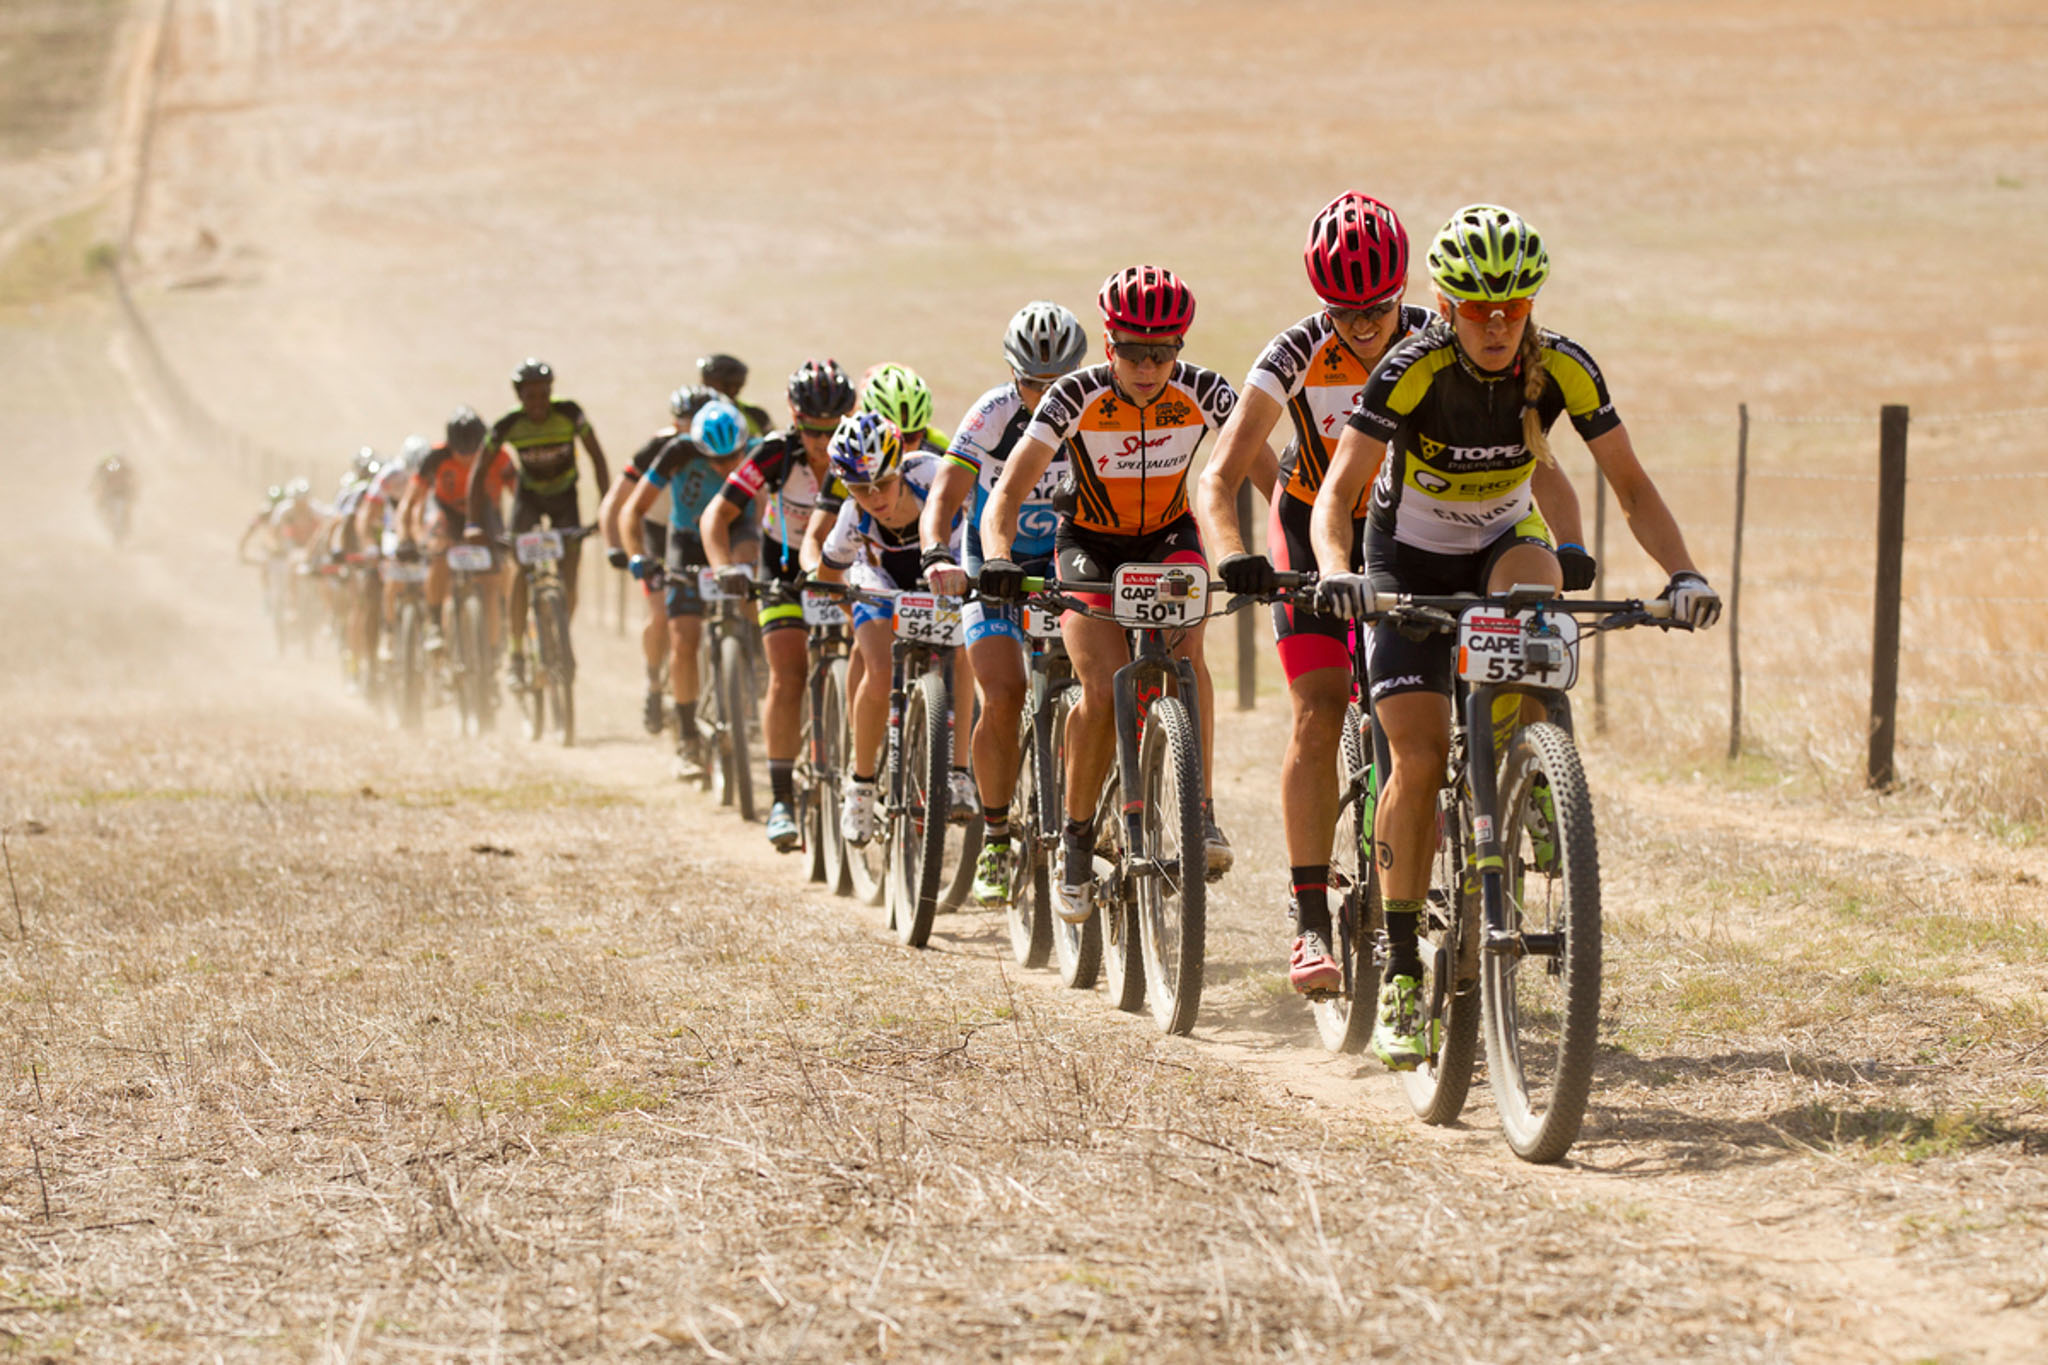 Sally Bigham Topeak Ergon leads overall winners Annika Langvad & Ariane Kleinhans of Spur-Specialized and stage winners Sabine Spitz & Yana Belomoina of Sport for Good during the final stage (stage 7) of the 2016 Absa Cape Epic Mountain Bike stage race from Boschendal in Stellenbosch to Meerendal Wine Estate in Durbanville, South Africa on the 20th March 2016 Photo by Gary Perkin/Cape Epic/SPORTZPICS PLEASE ENSURE THE APPROPRIATE CREDIT IS GIVEN TO THE PHOTOGRAPHER AND SPORTZPICS ALONG WITH THE ABSA CAPE EPIC ace2016